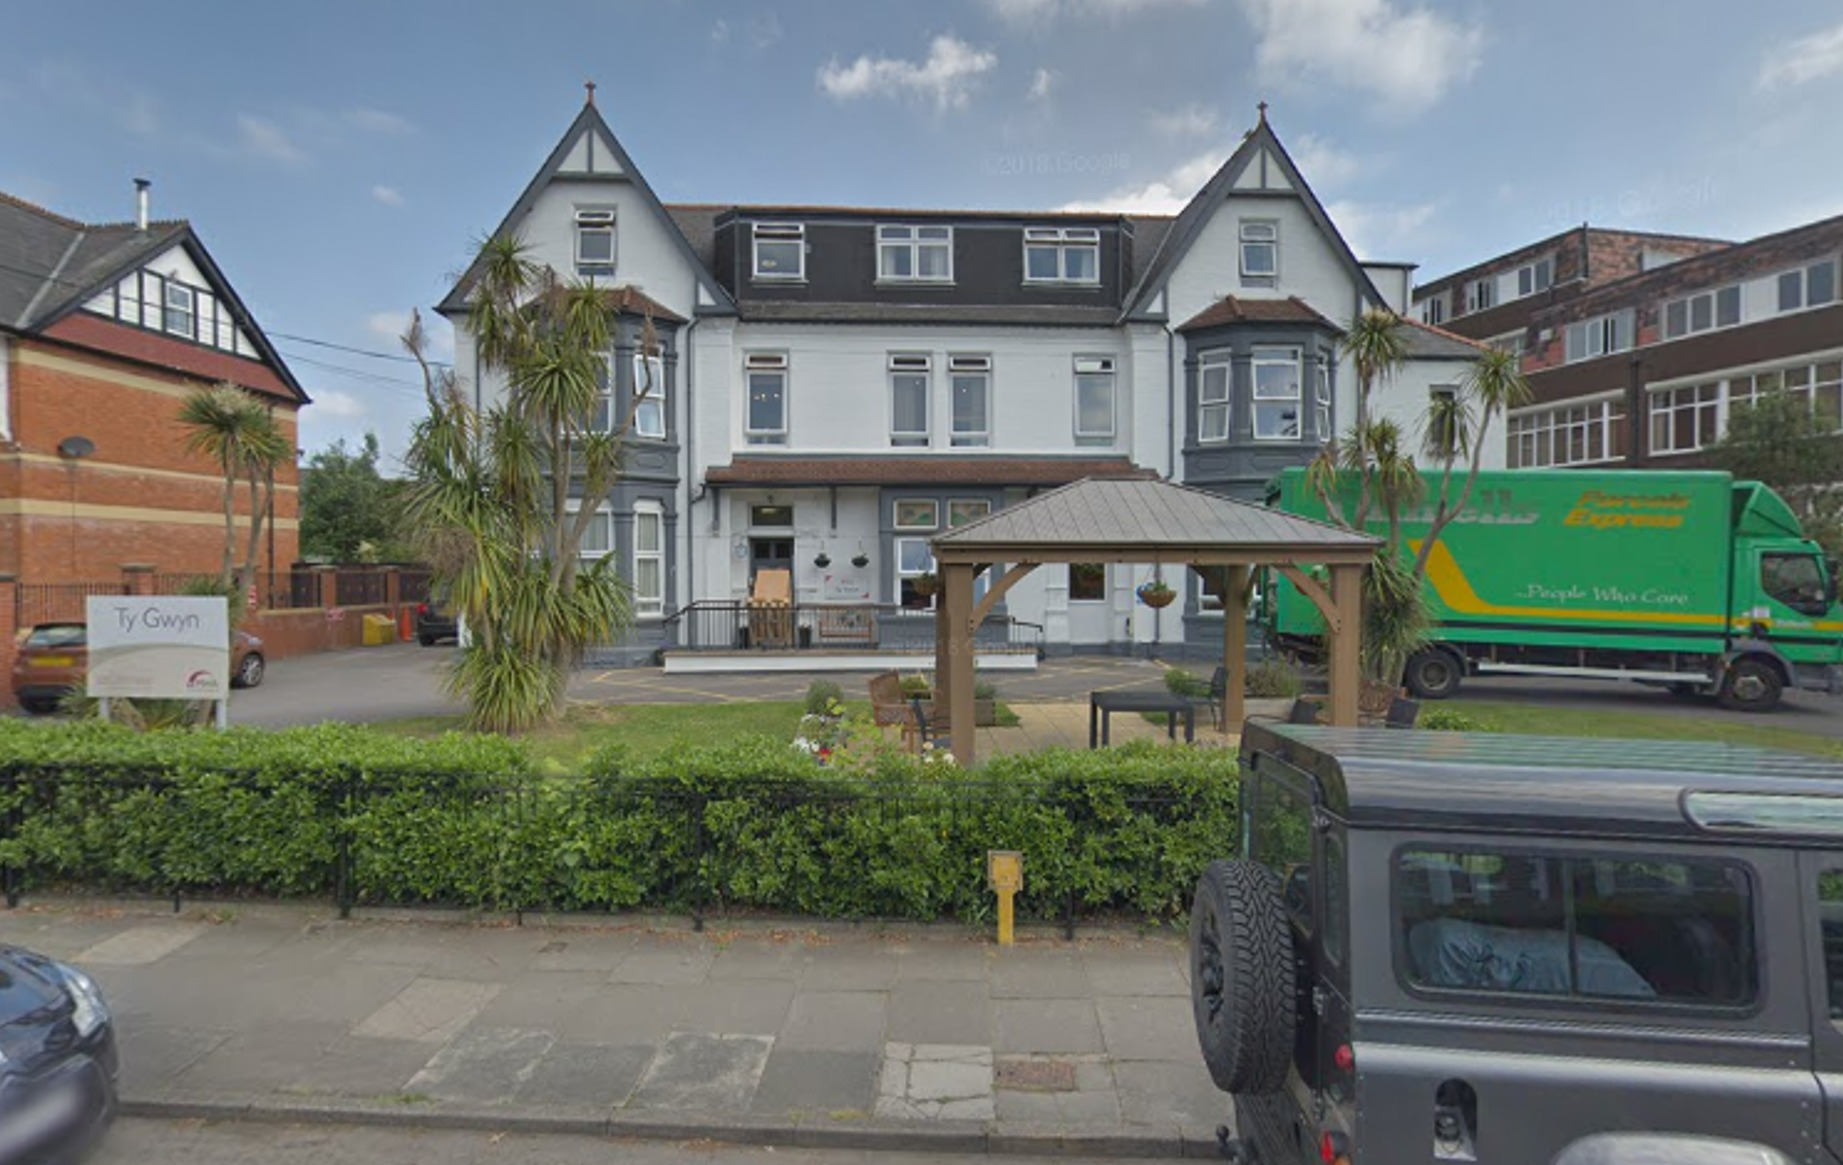 Ty Gwyn Care Home on Stanwell Road was inspected in February this year. Credit: Google